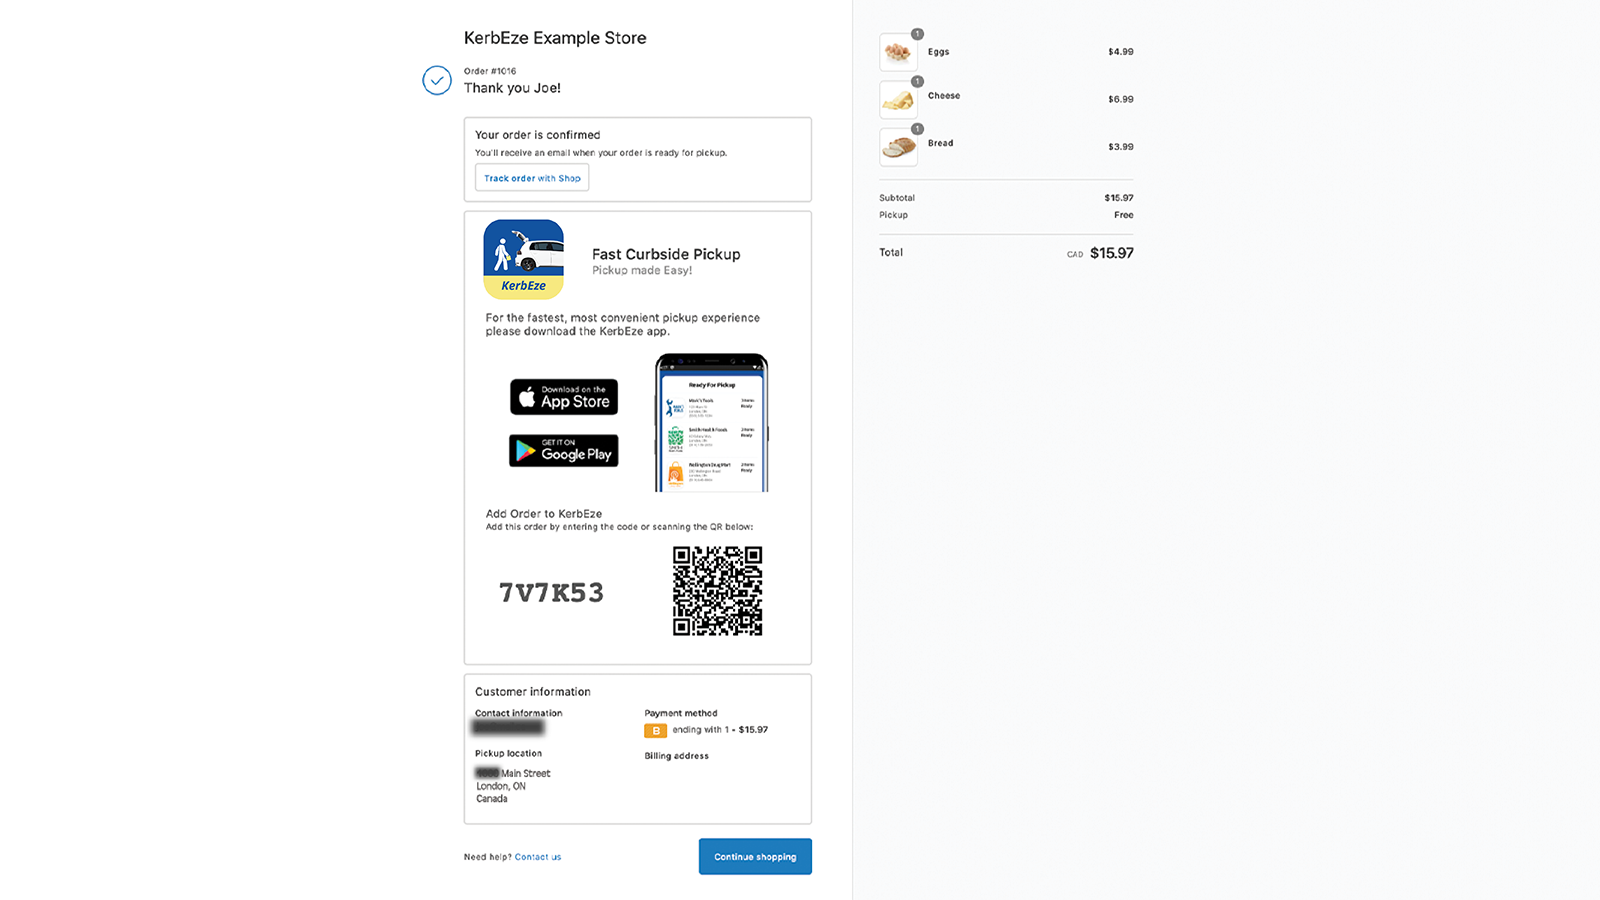 Order Confirmation Page with KerbEze pickup option